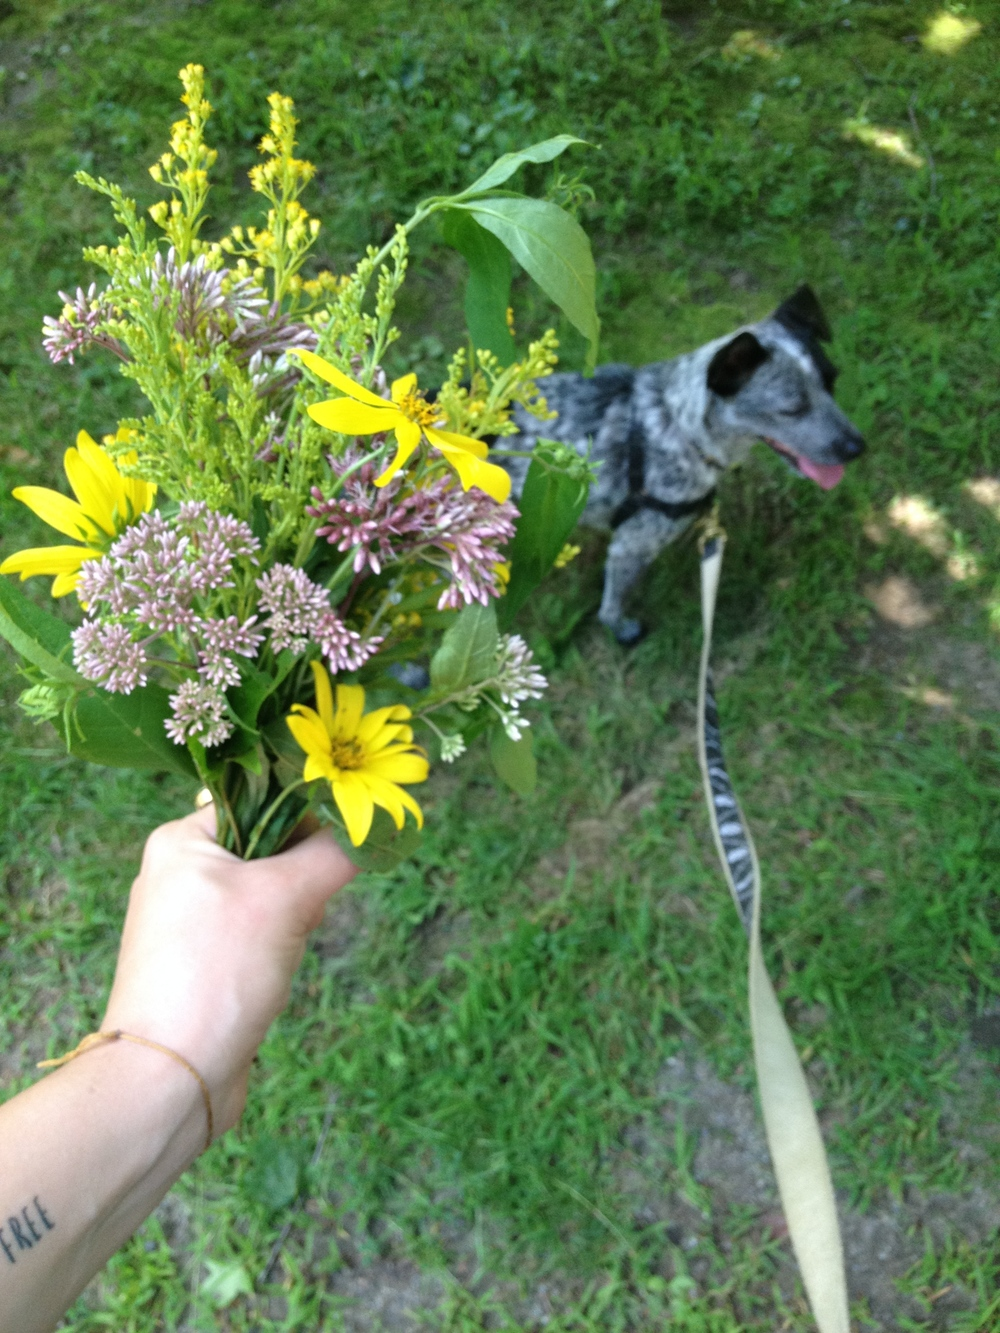 after swimming with friends and puppies and babies, i gather some flowers.  i don't keep them for myself but give them away.